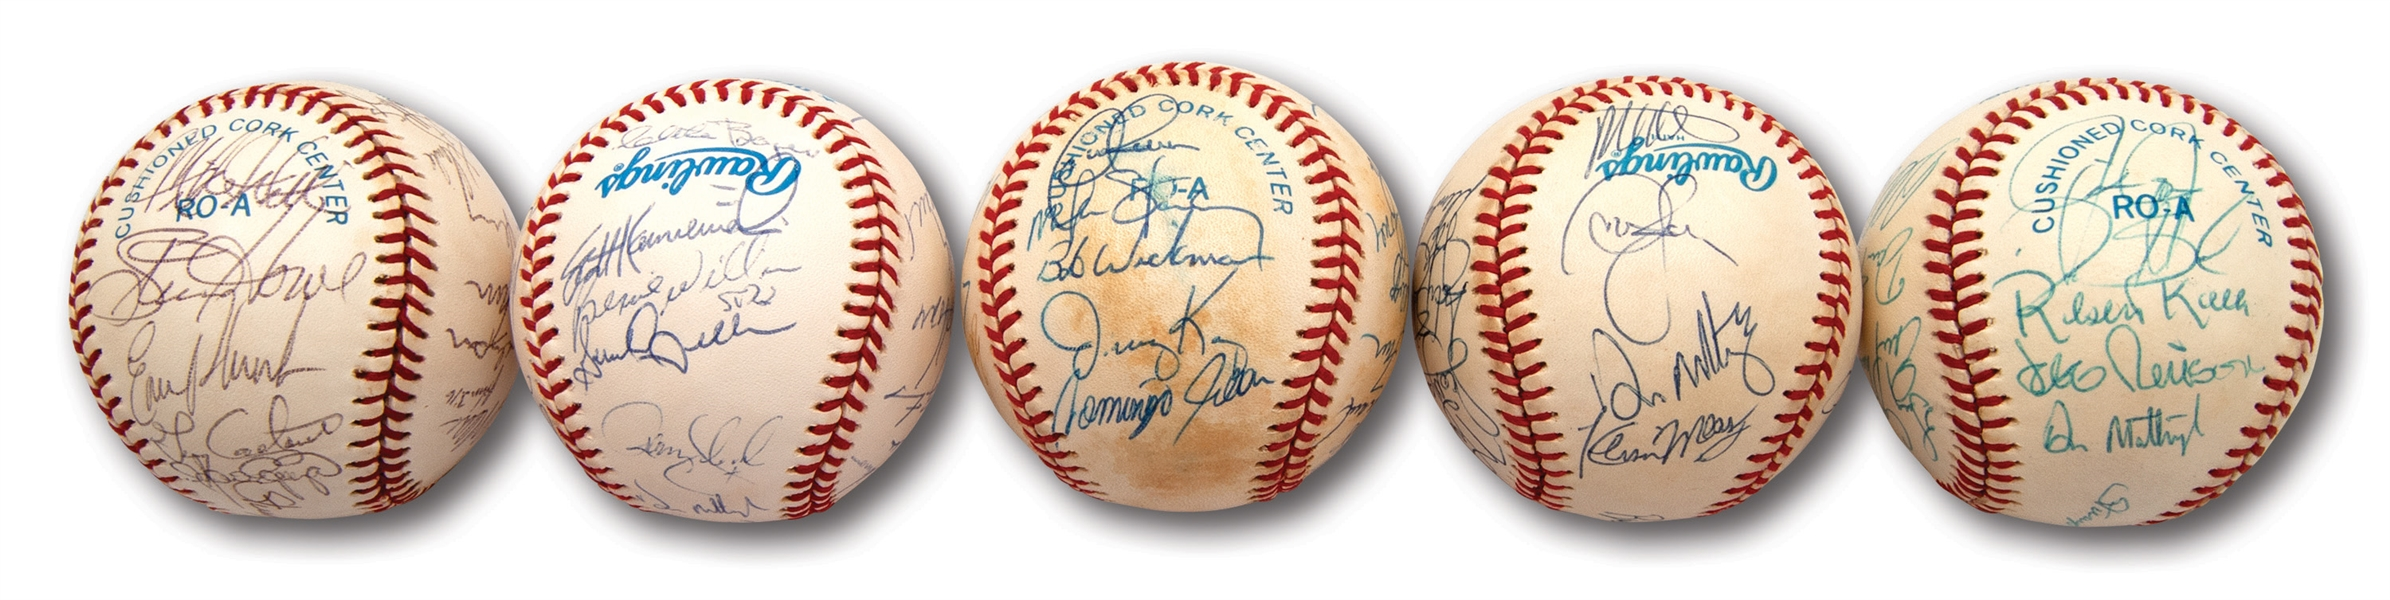 1990-1994 NEW YORK YANKEES TEAM SIGNED OAL (BROWN) BASEBALLS LOT OF (5) - ALL W/ PSA/DNA LOAS